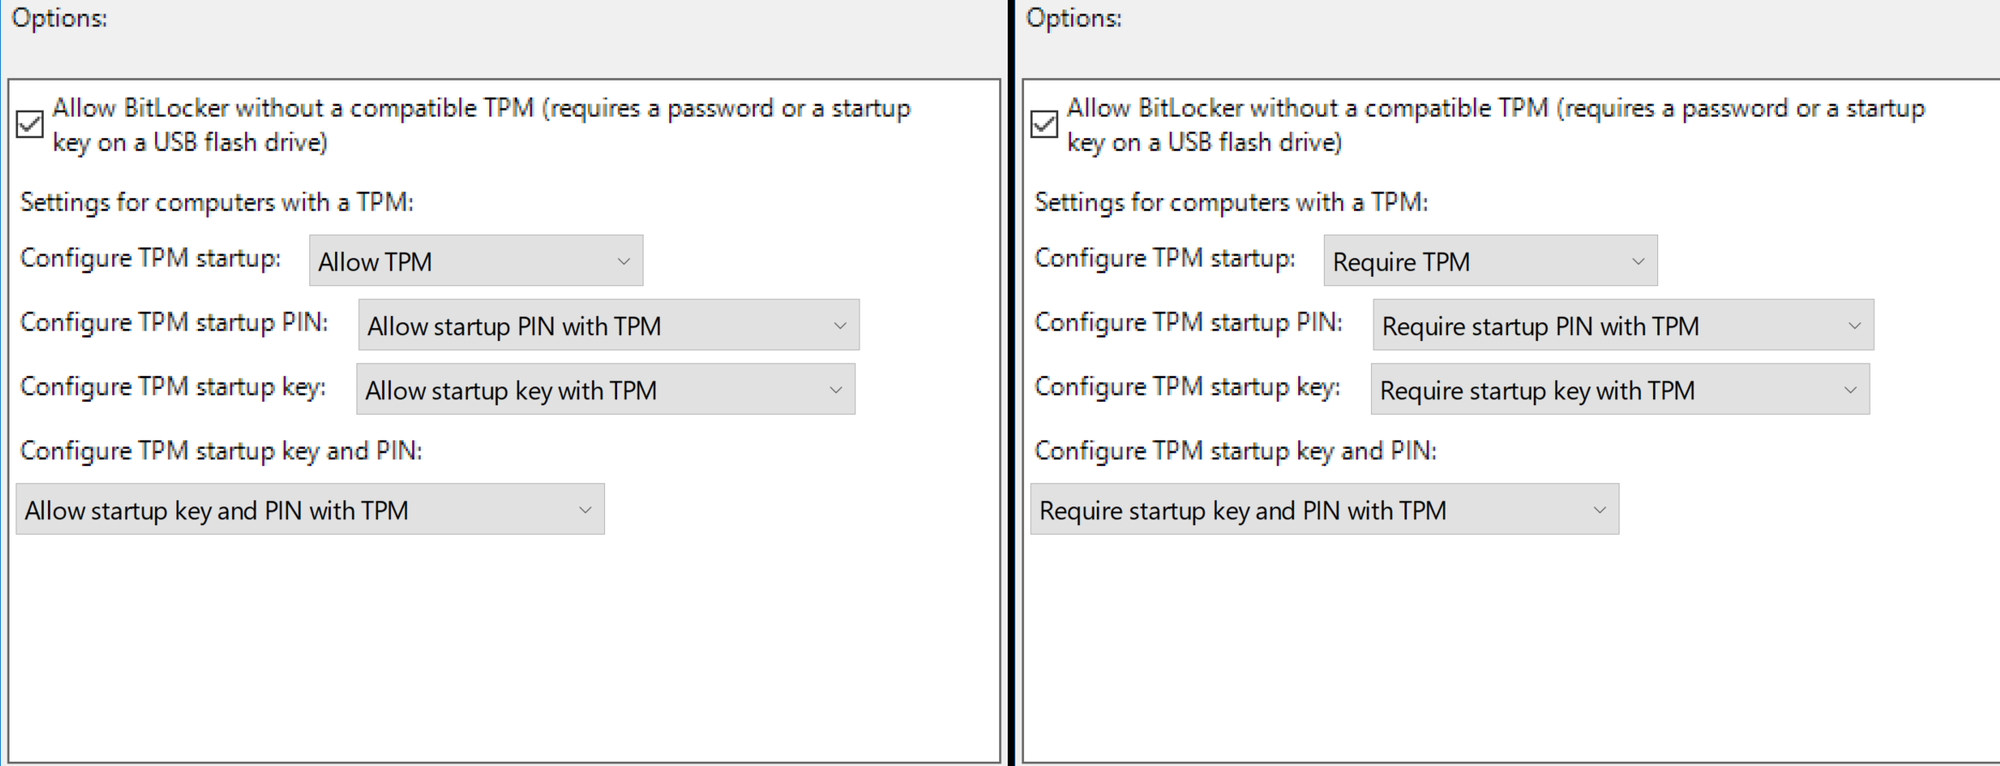 tpm key with pin group policy settings a228a135-ad14-4044-b0ba-8a9623828c1c?upload=true.png